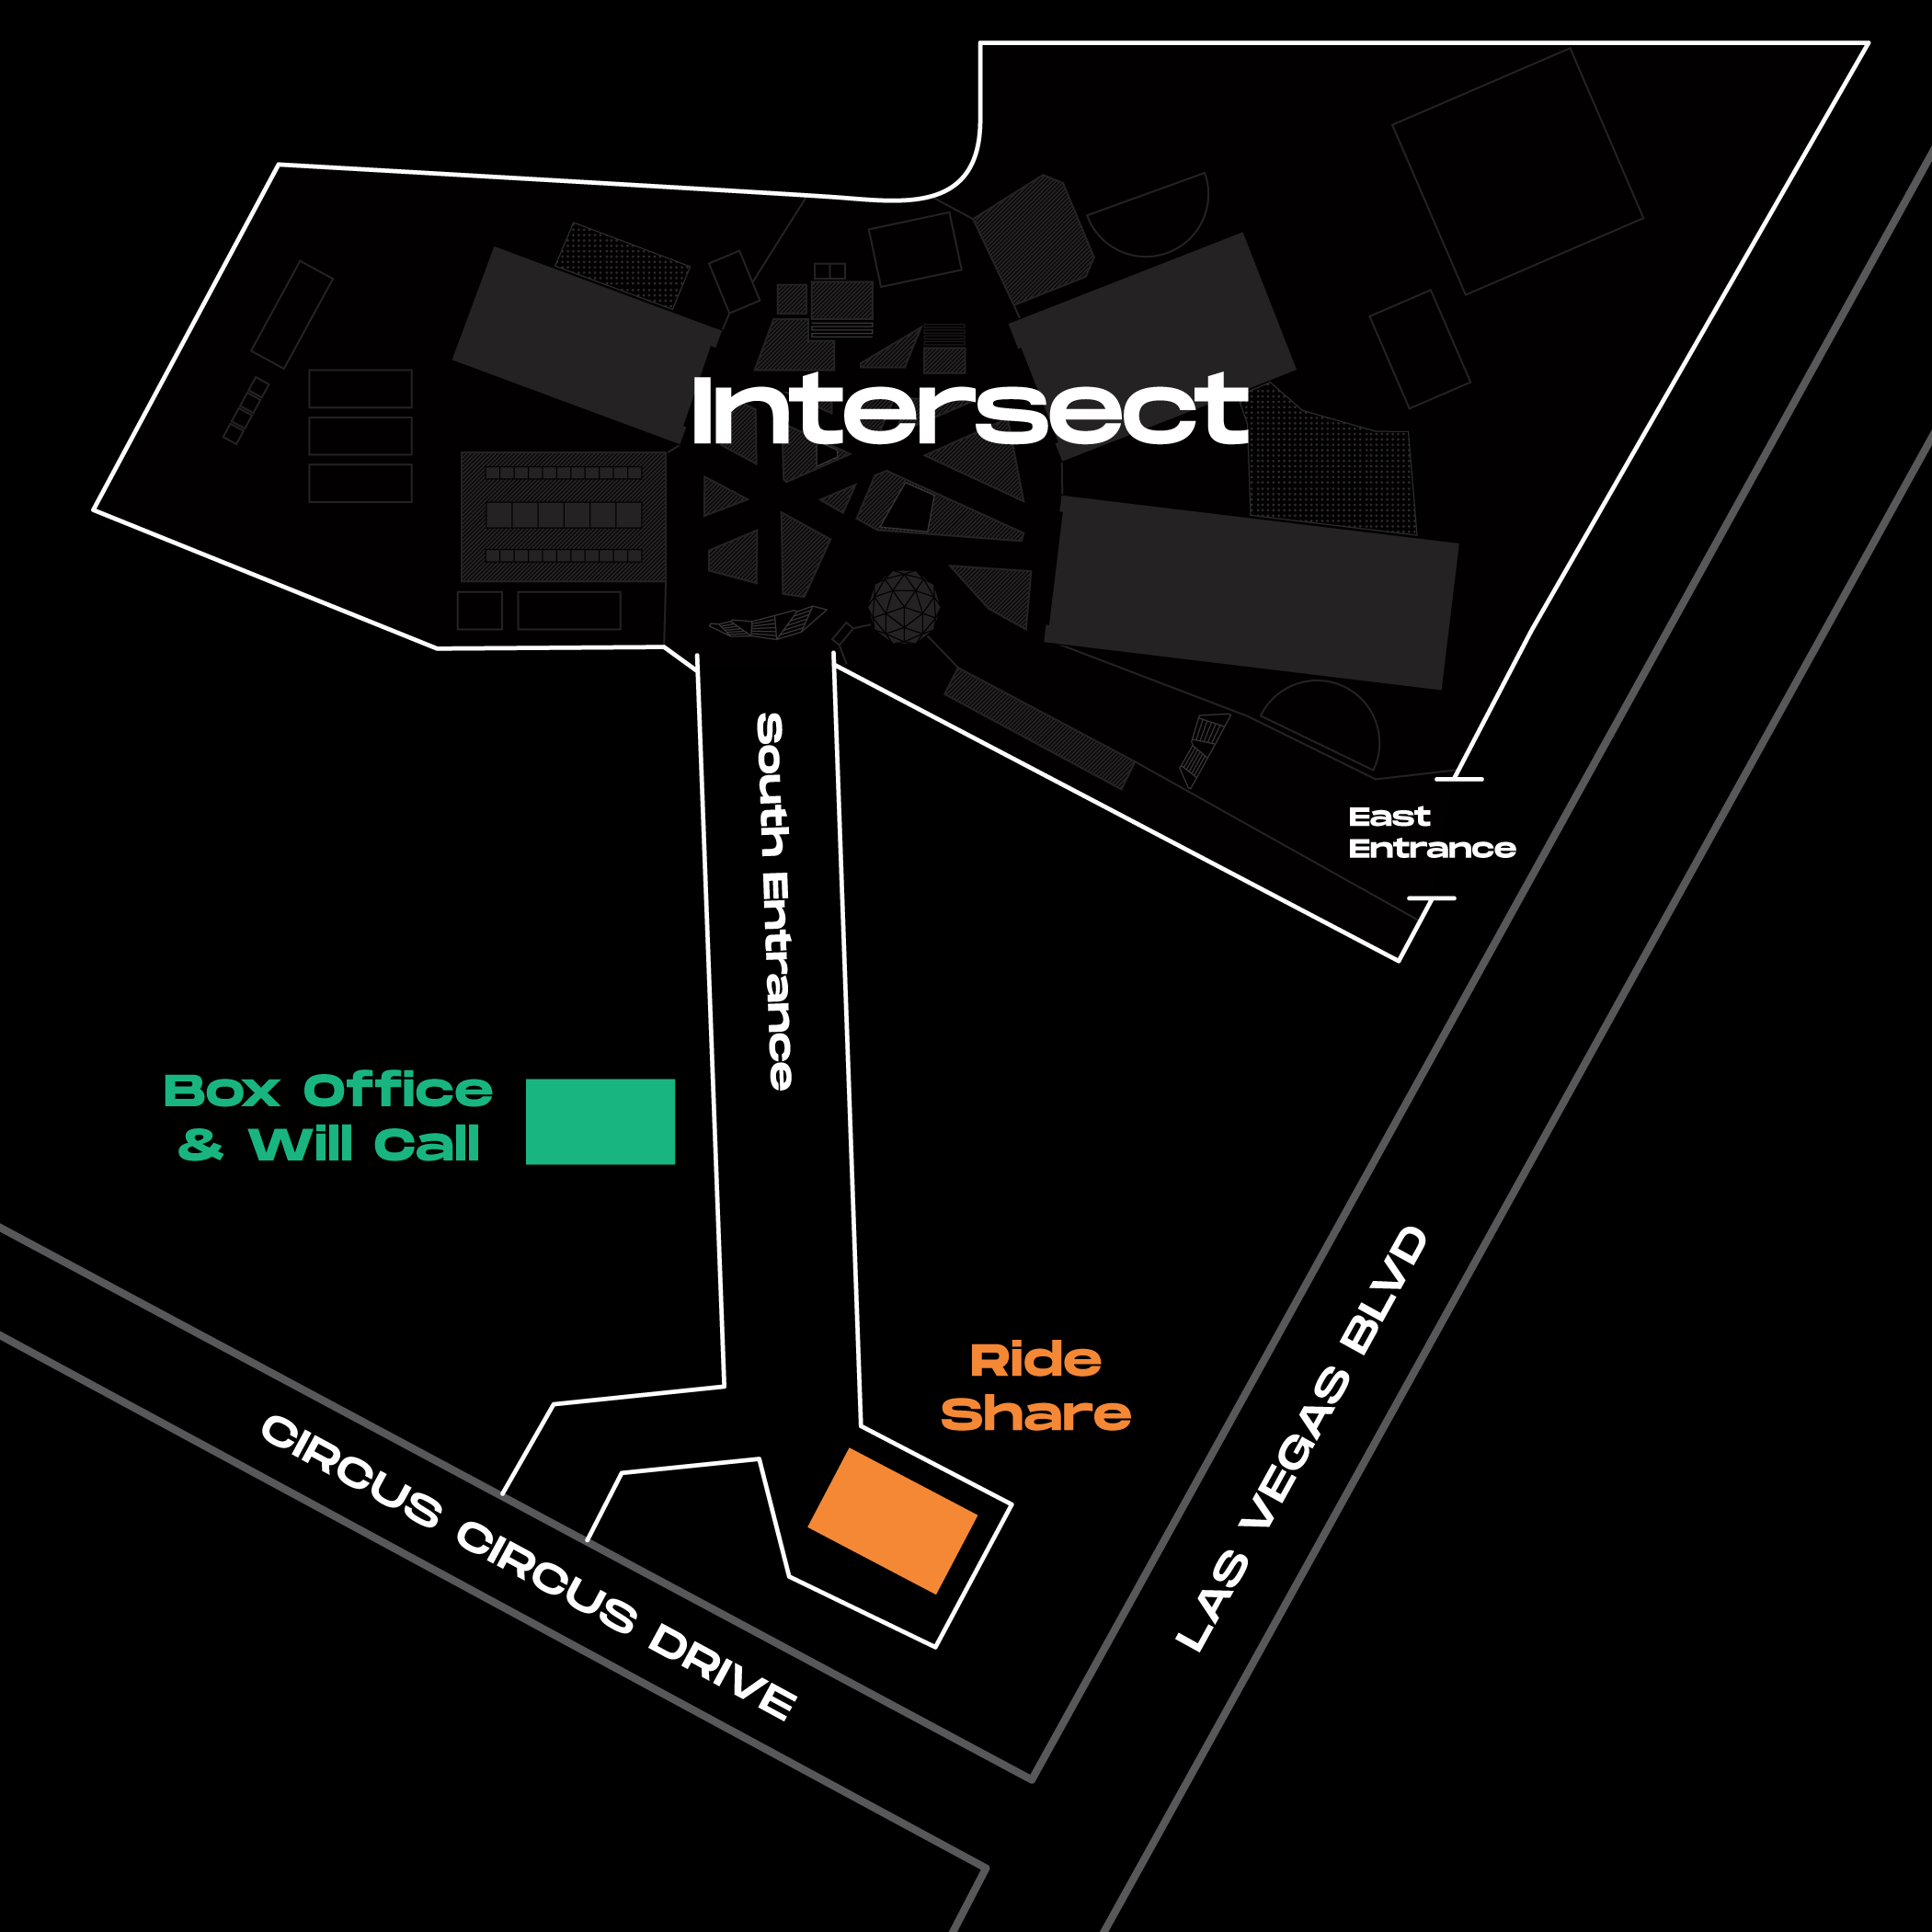 Intersect 2019 Transportation Map